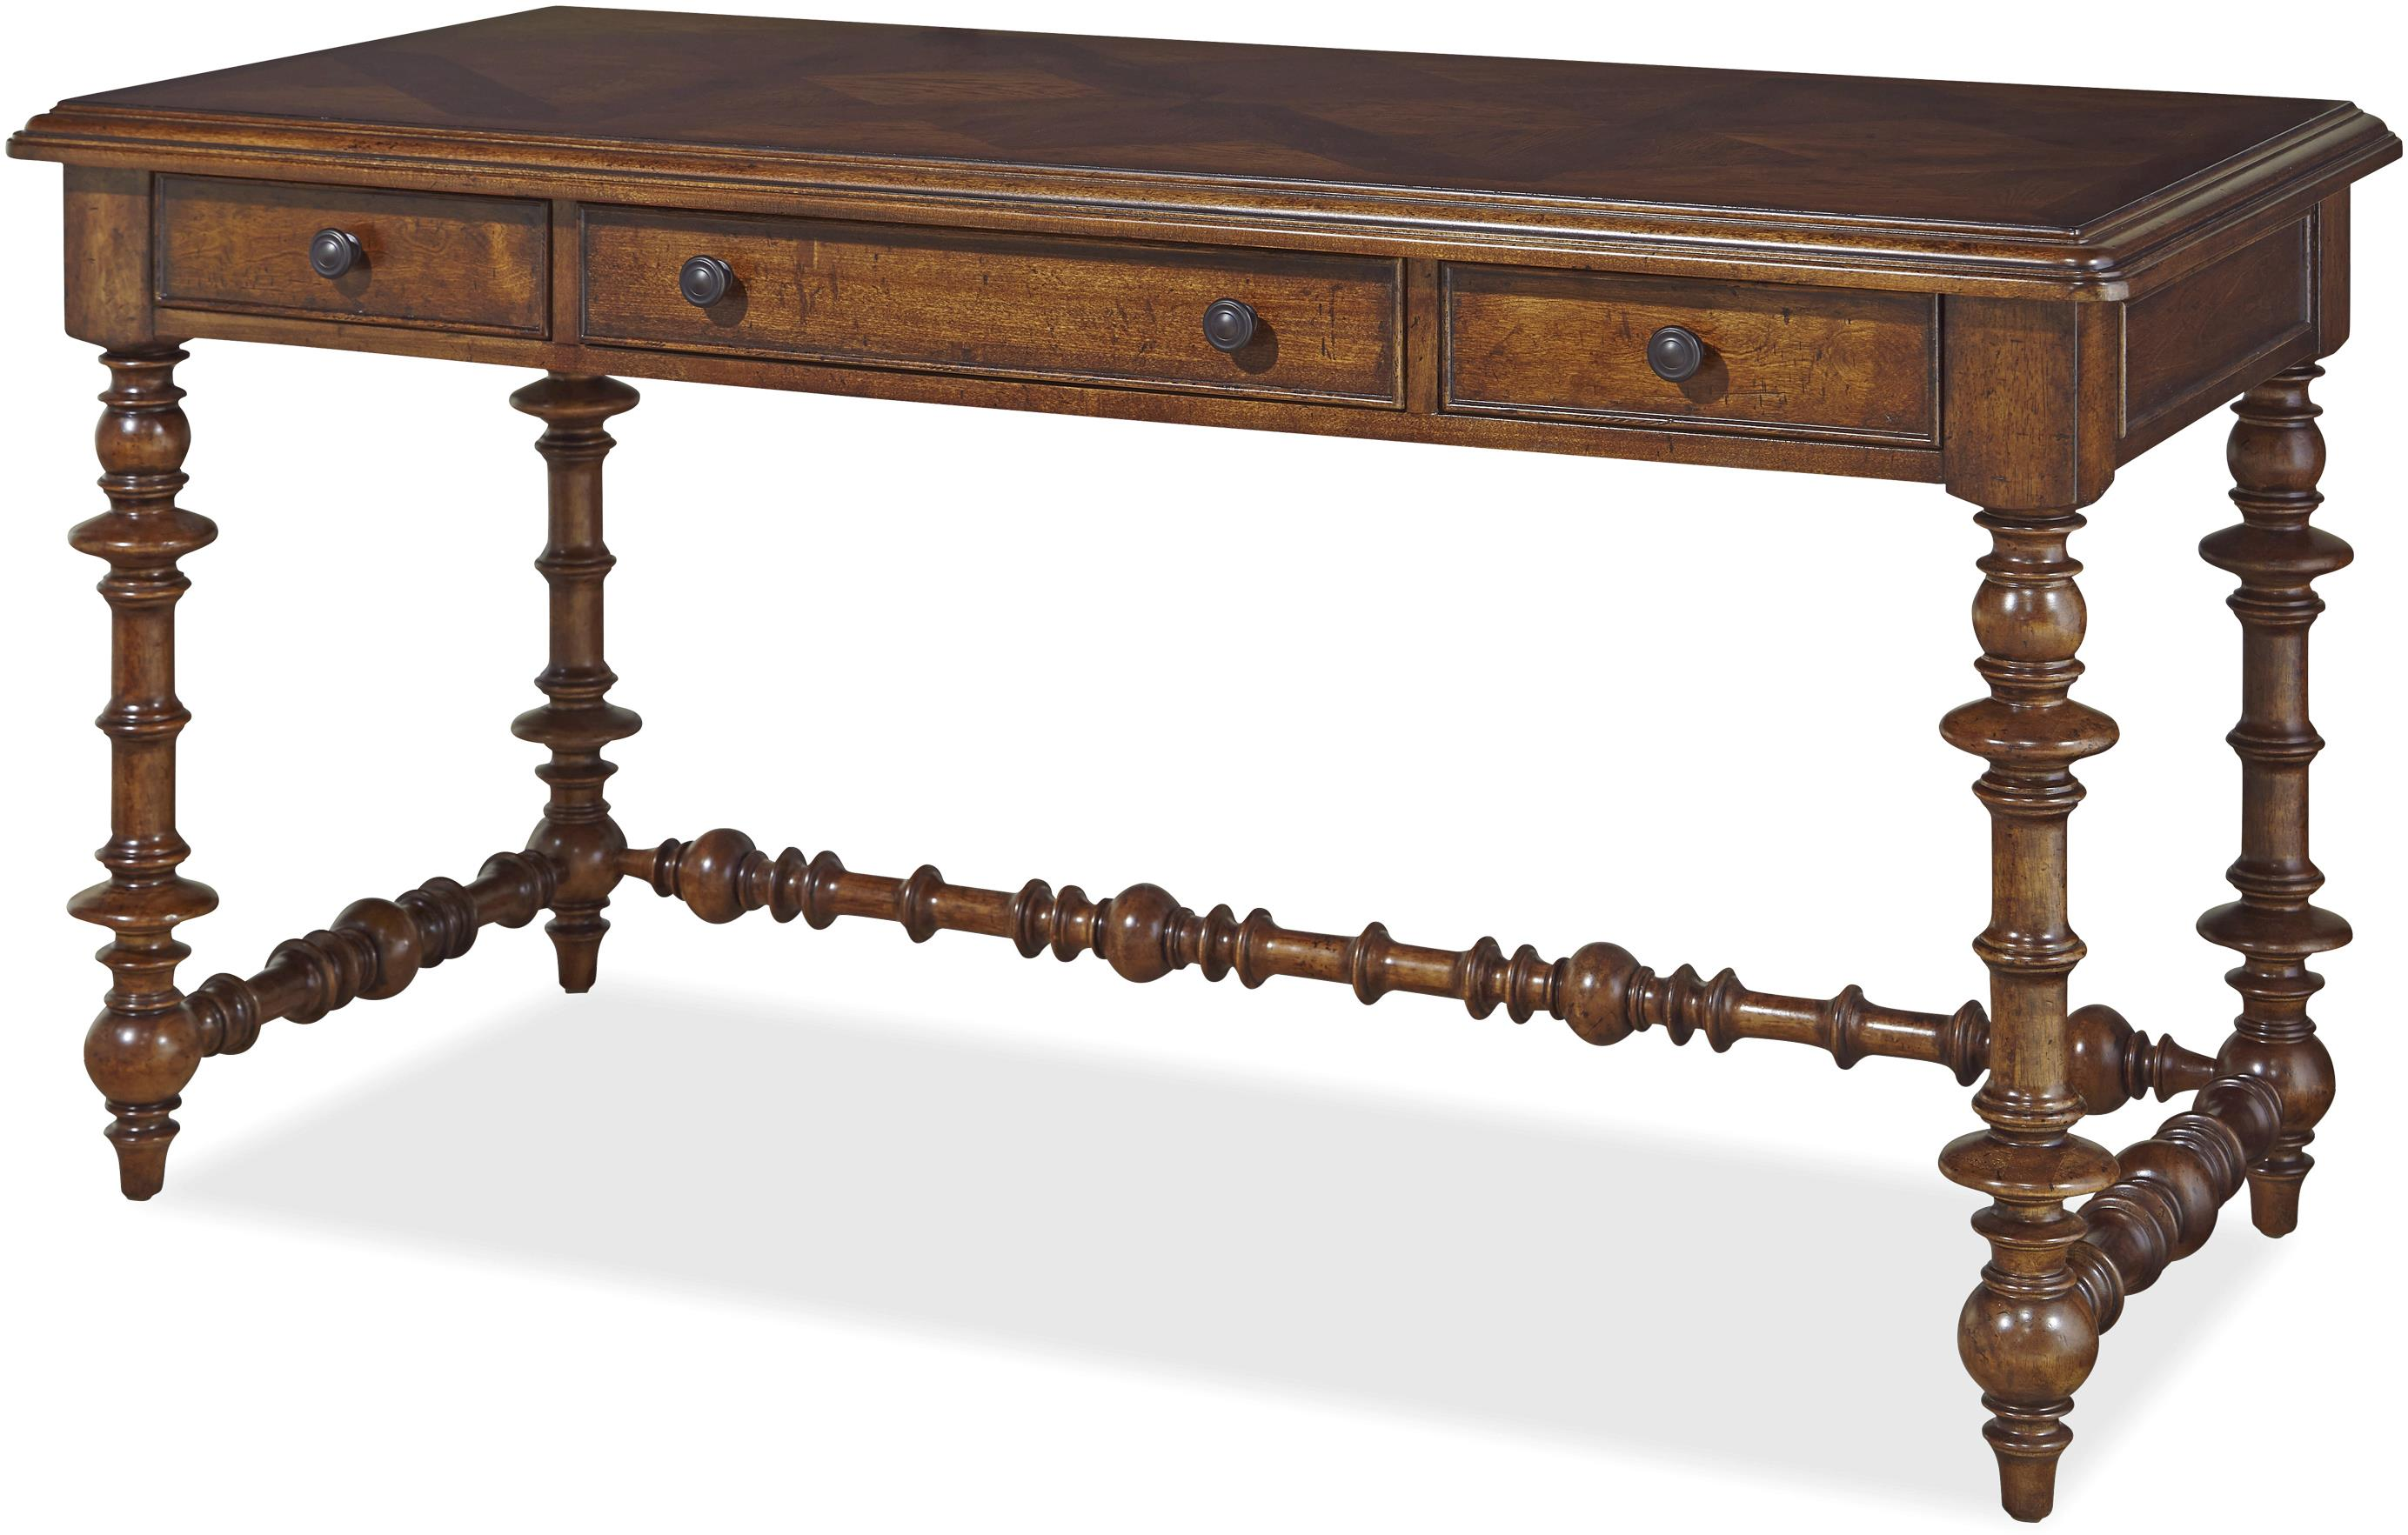 Morris Home Furnishings Darling Darling Desk - Item Number: 596813